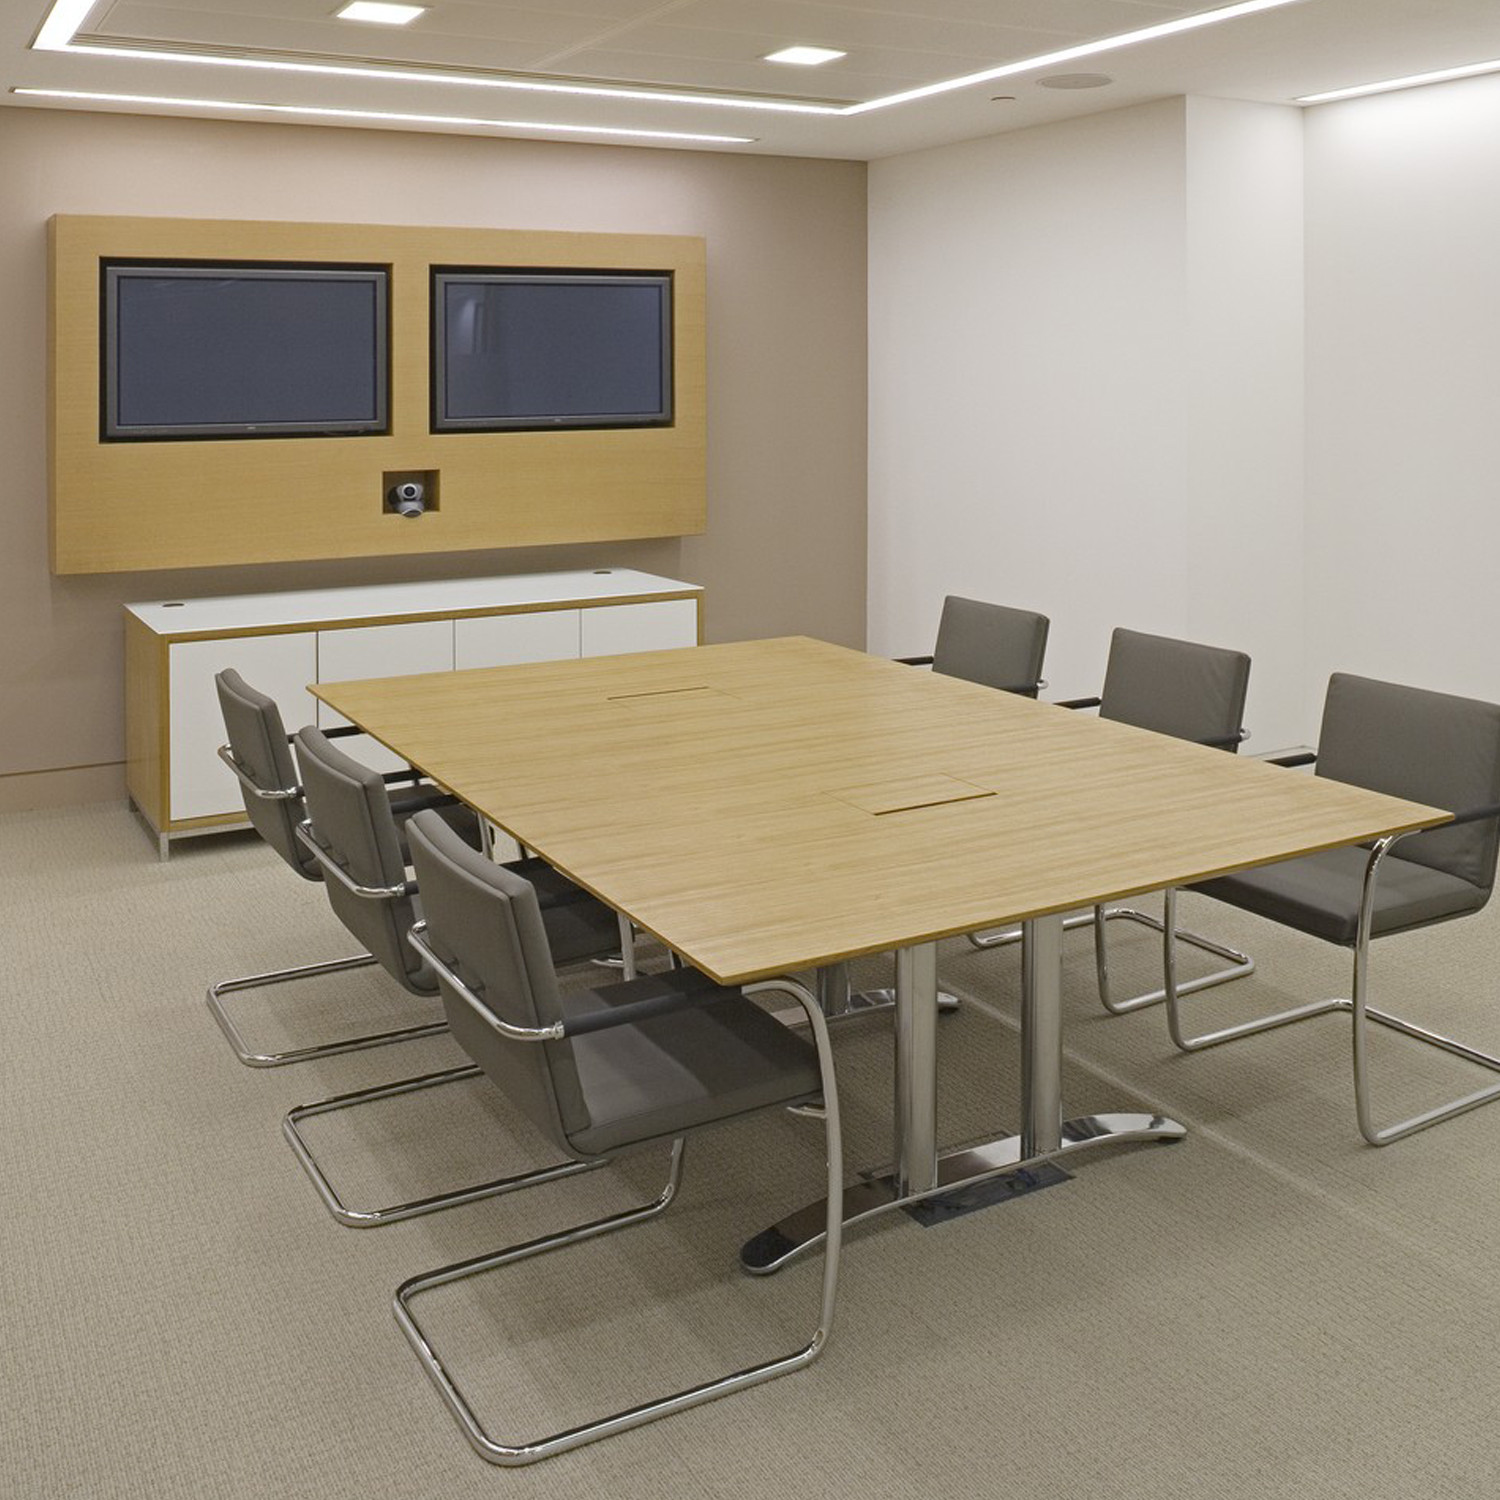 Crome Credenza in a meeting room